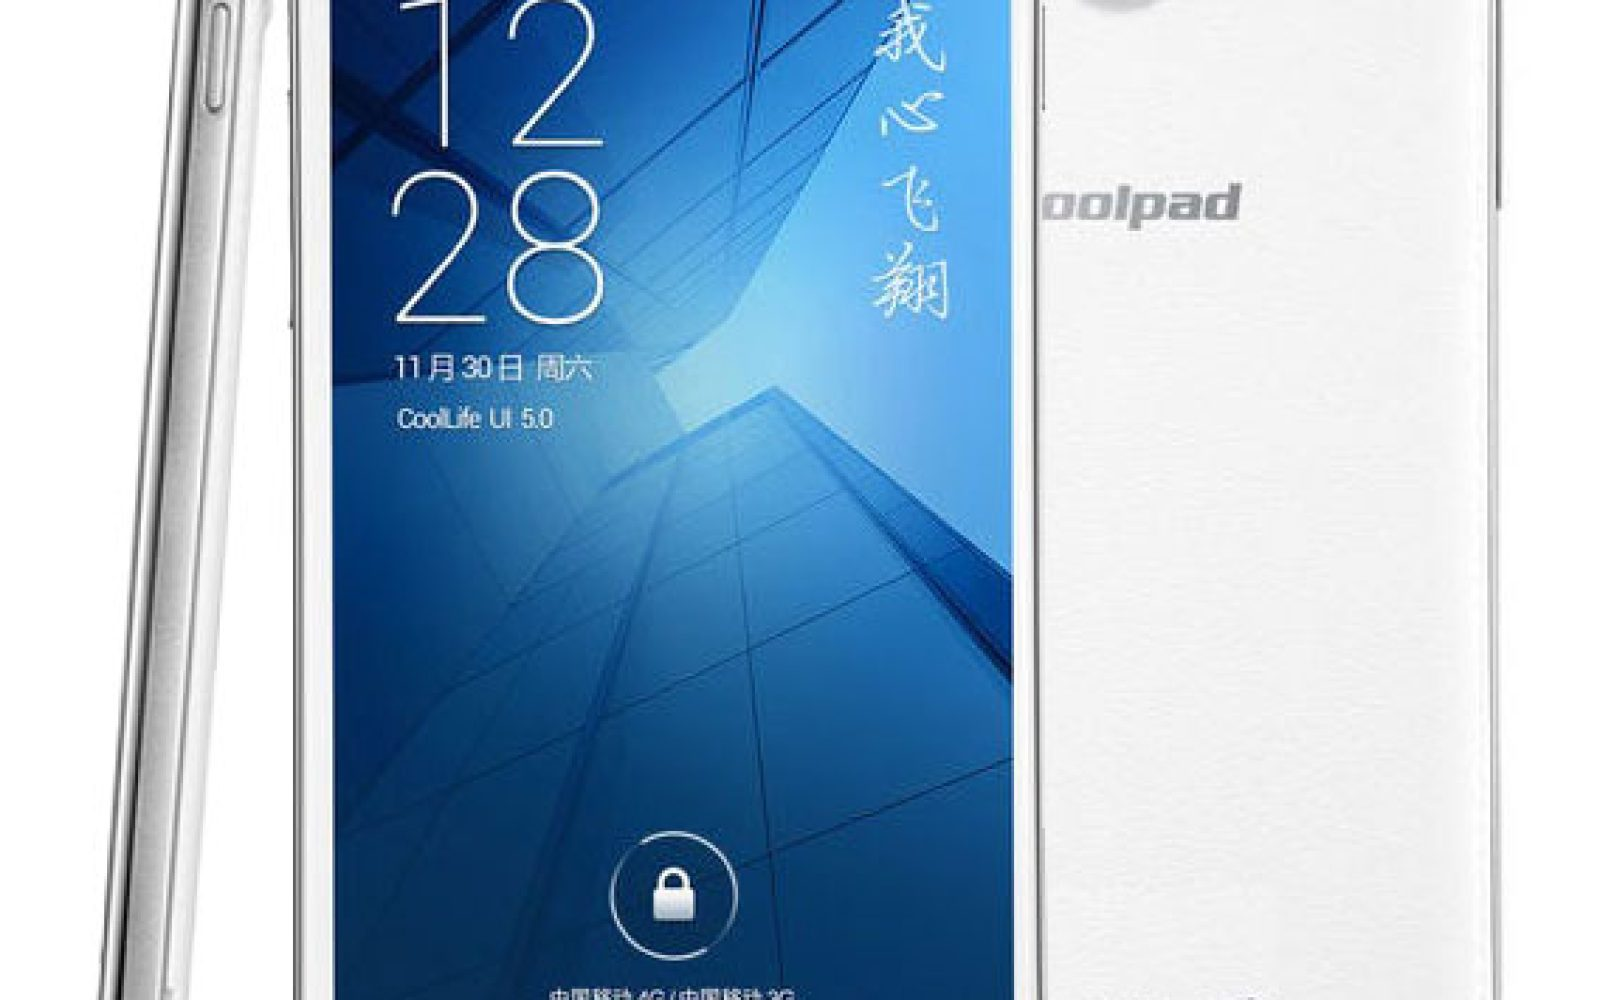 Report: Chinese smartphone maker Coolpad hides malicious